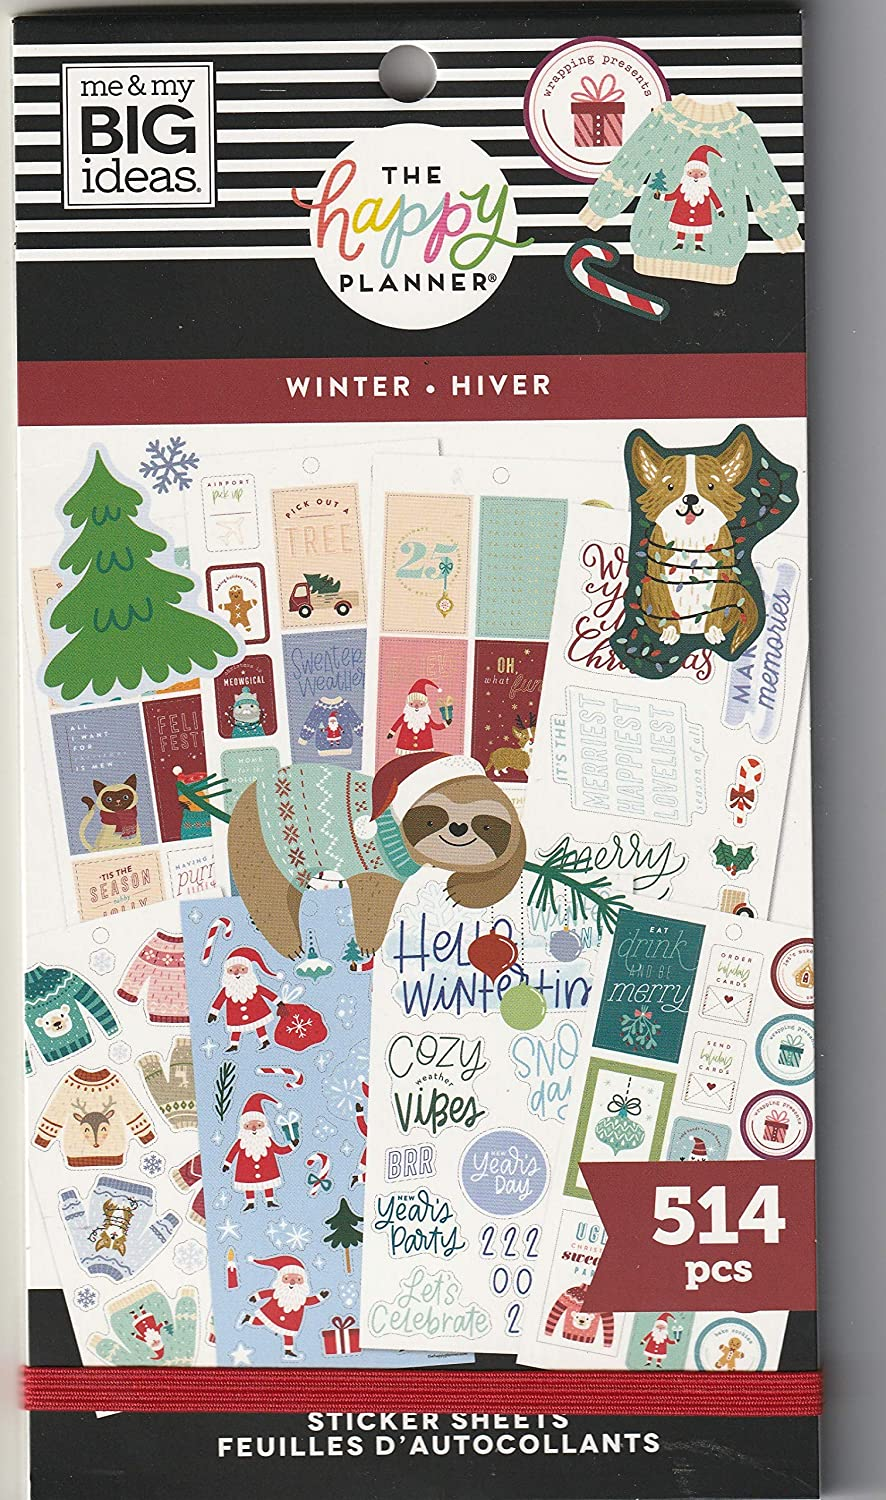 The Happy Planner Sticker Value Pack - Scrapbooking Supplies - Winter Season Theme - Multi-Color - Great for Projects, Scrapbooks & Albums - 30 Sheets, 514 Stickers Total